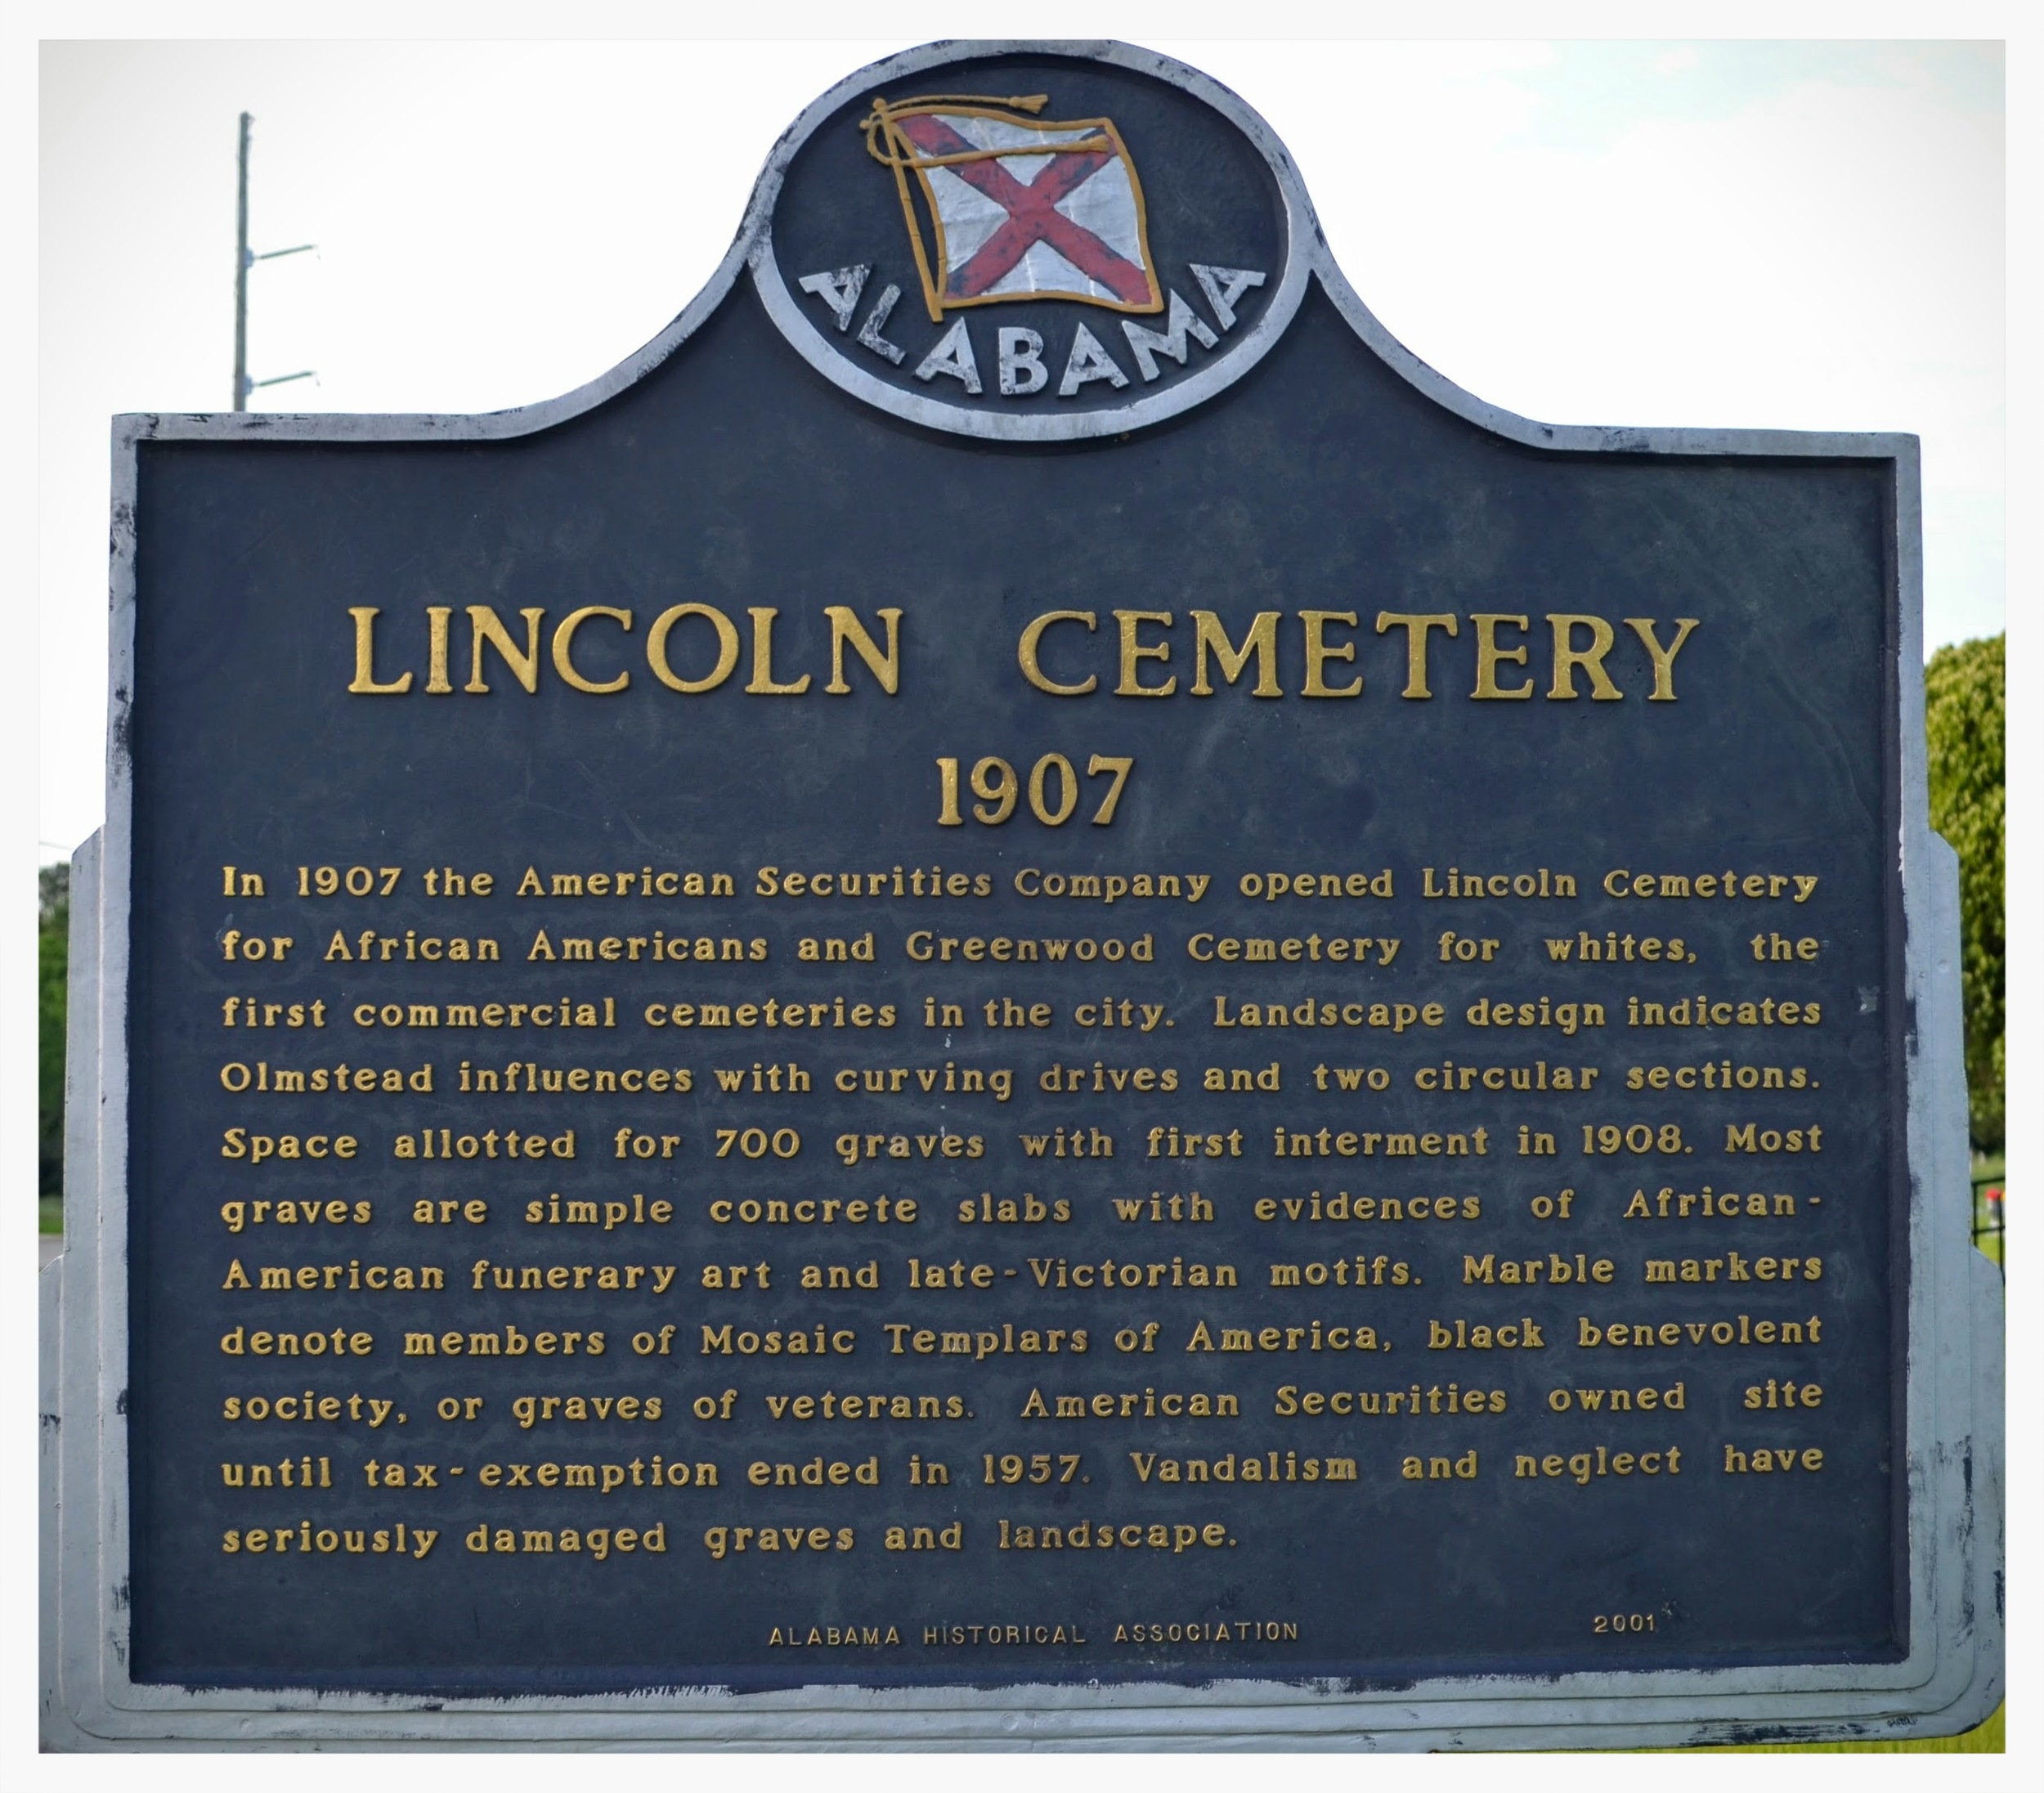 Lincoln Cemetery historical marker, Montgomery, Montgomery County, Alabama